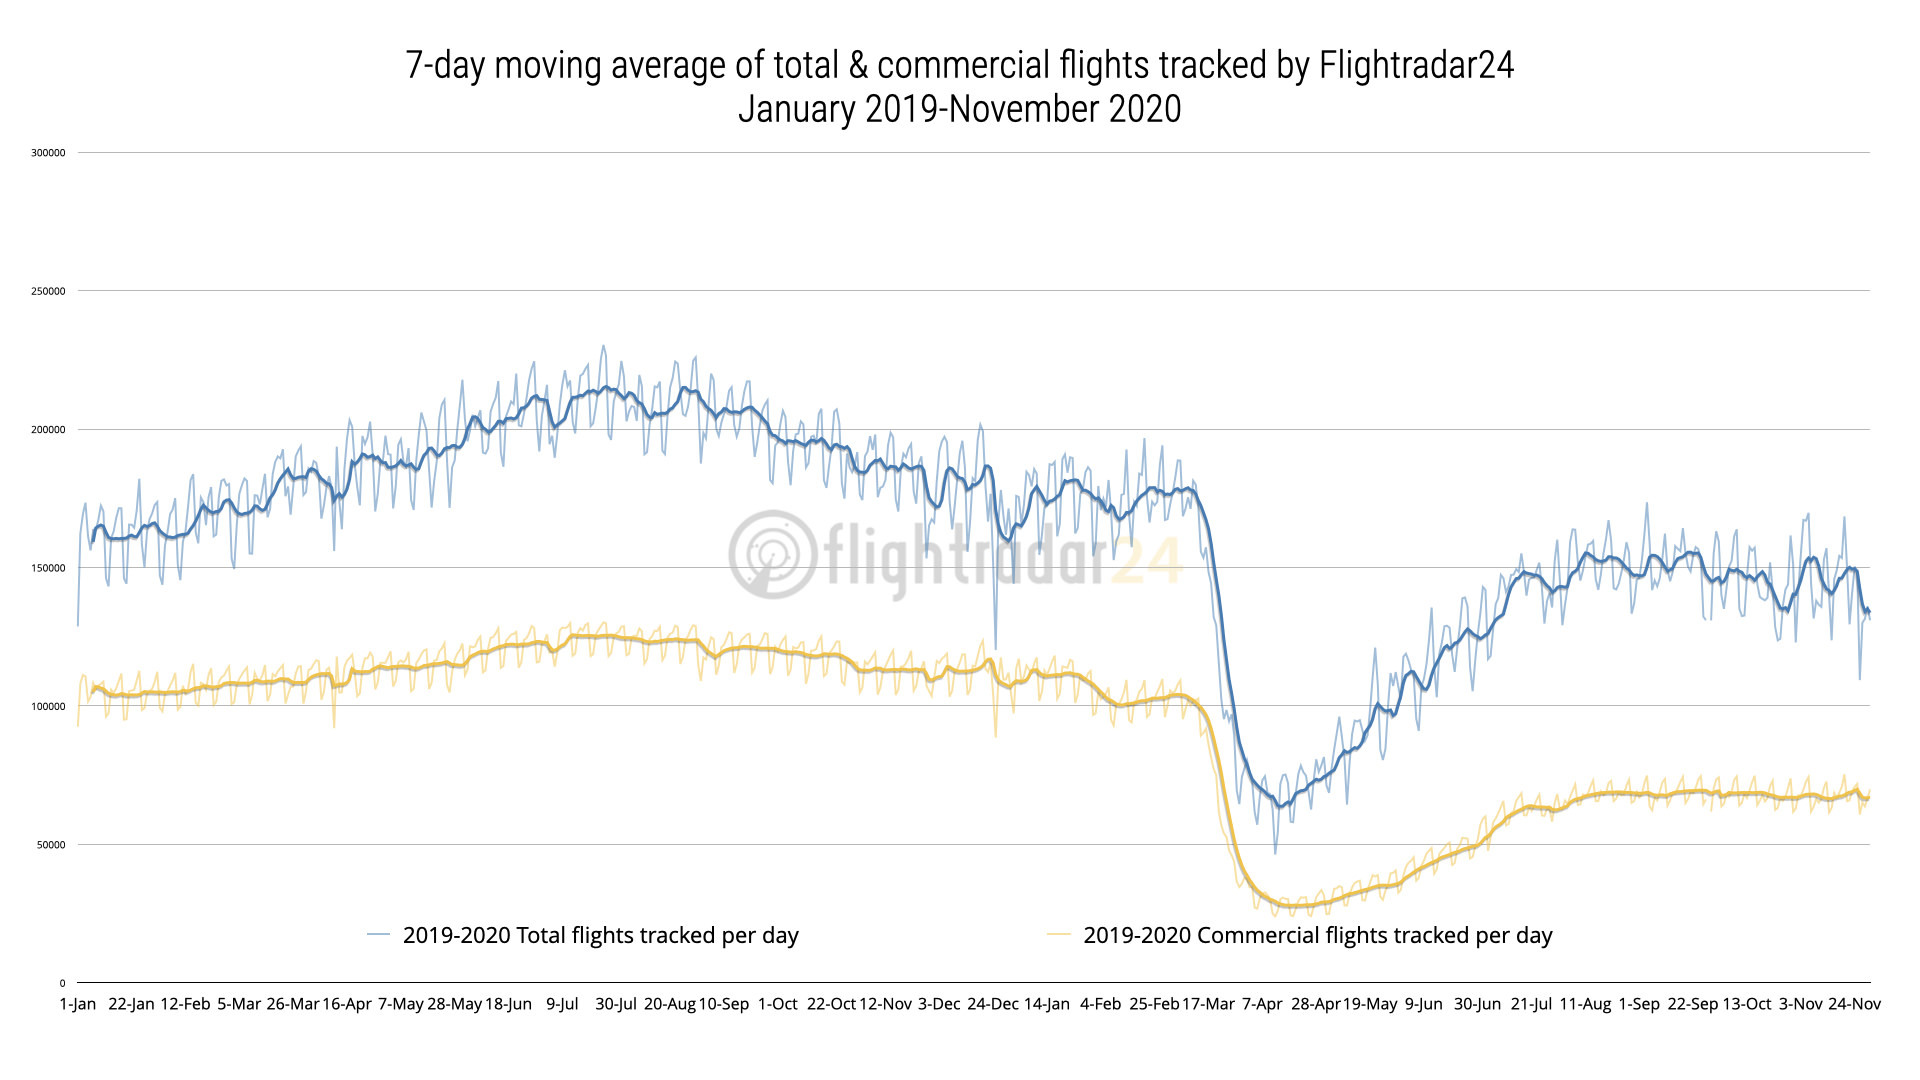 Chart showing total and commercial flights from January 2019 through November 2020